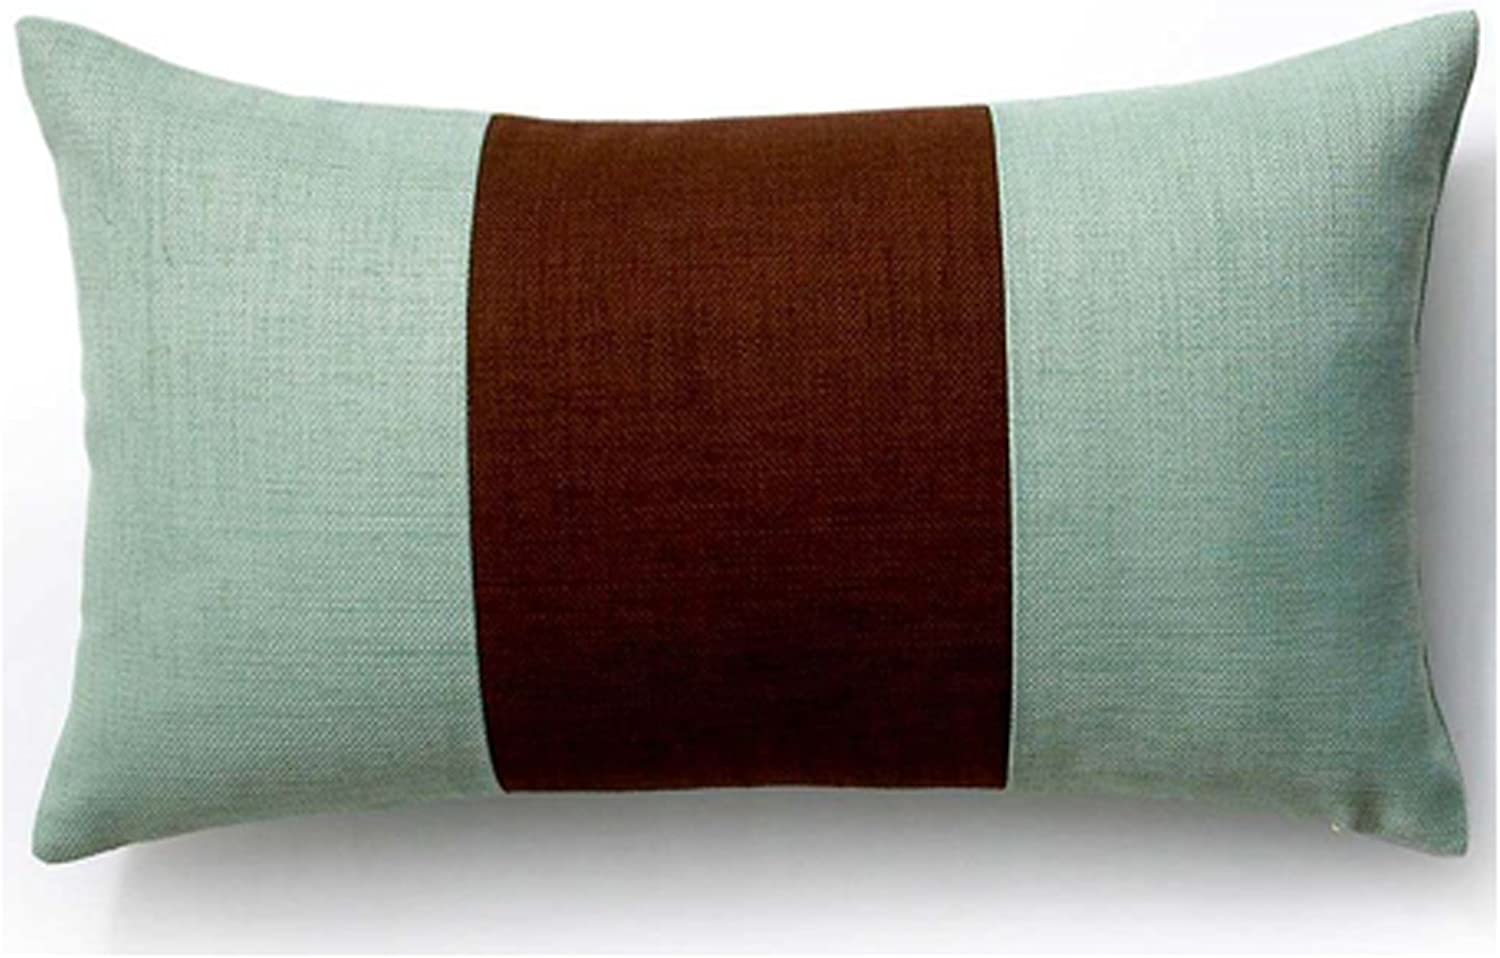 Jiti 1220-RBL-PCS-CH-MT Rebel Pieces Lumbar Pillow, 12 x 20, Chocolate Mint